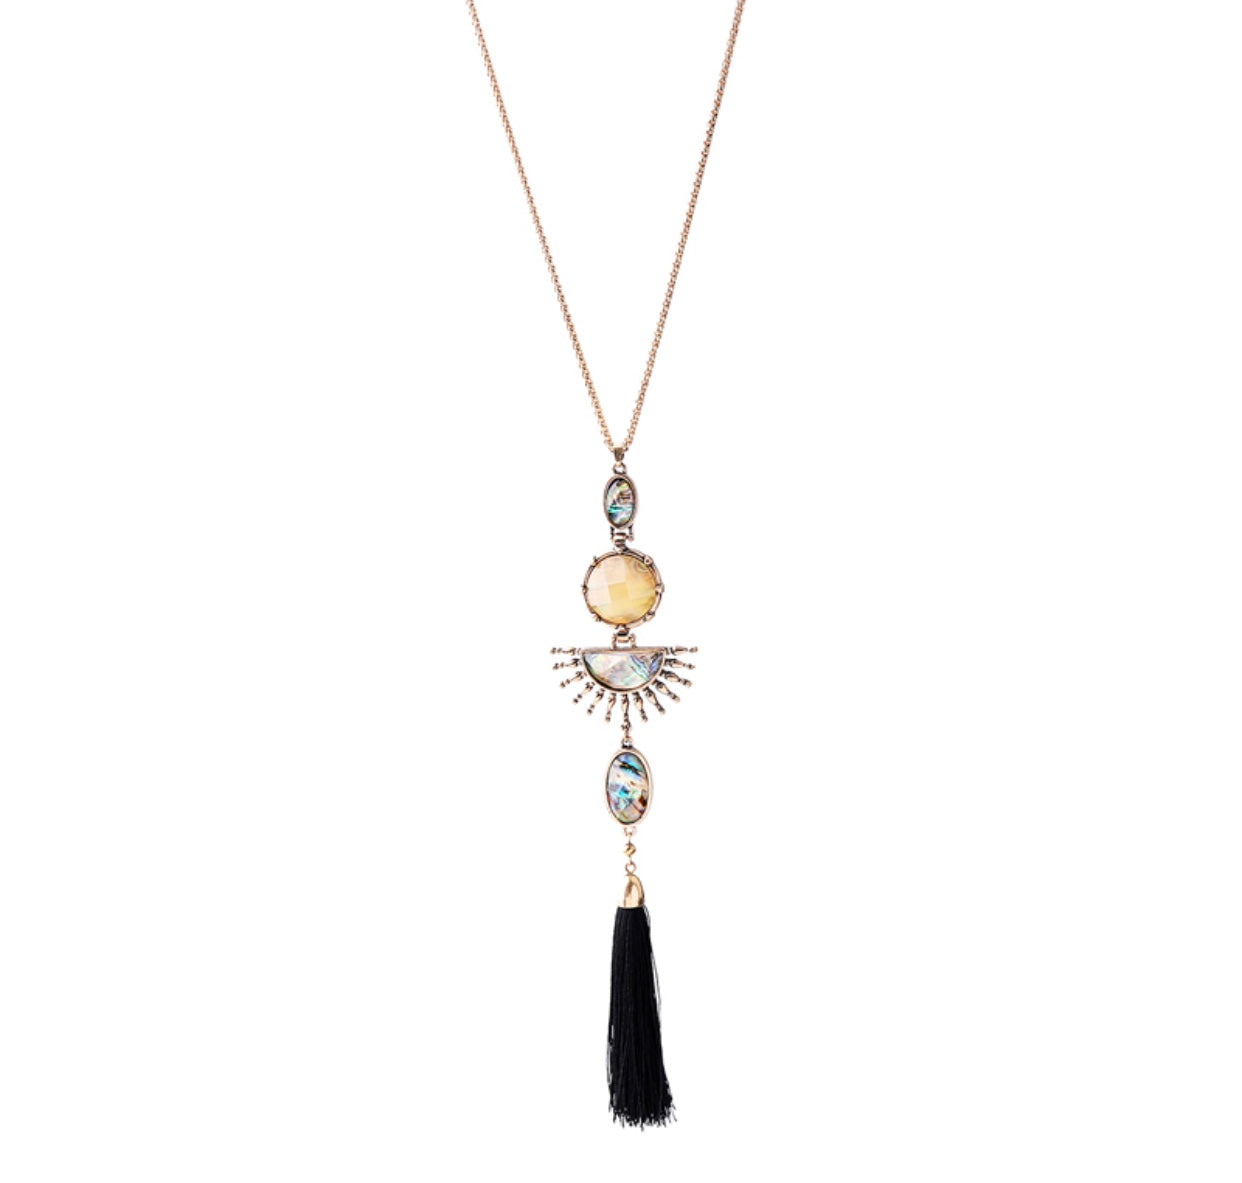 BLACK TASSEL HOLOGRAPHIC NECKLACE